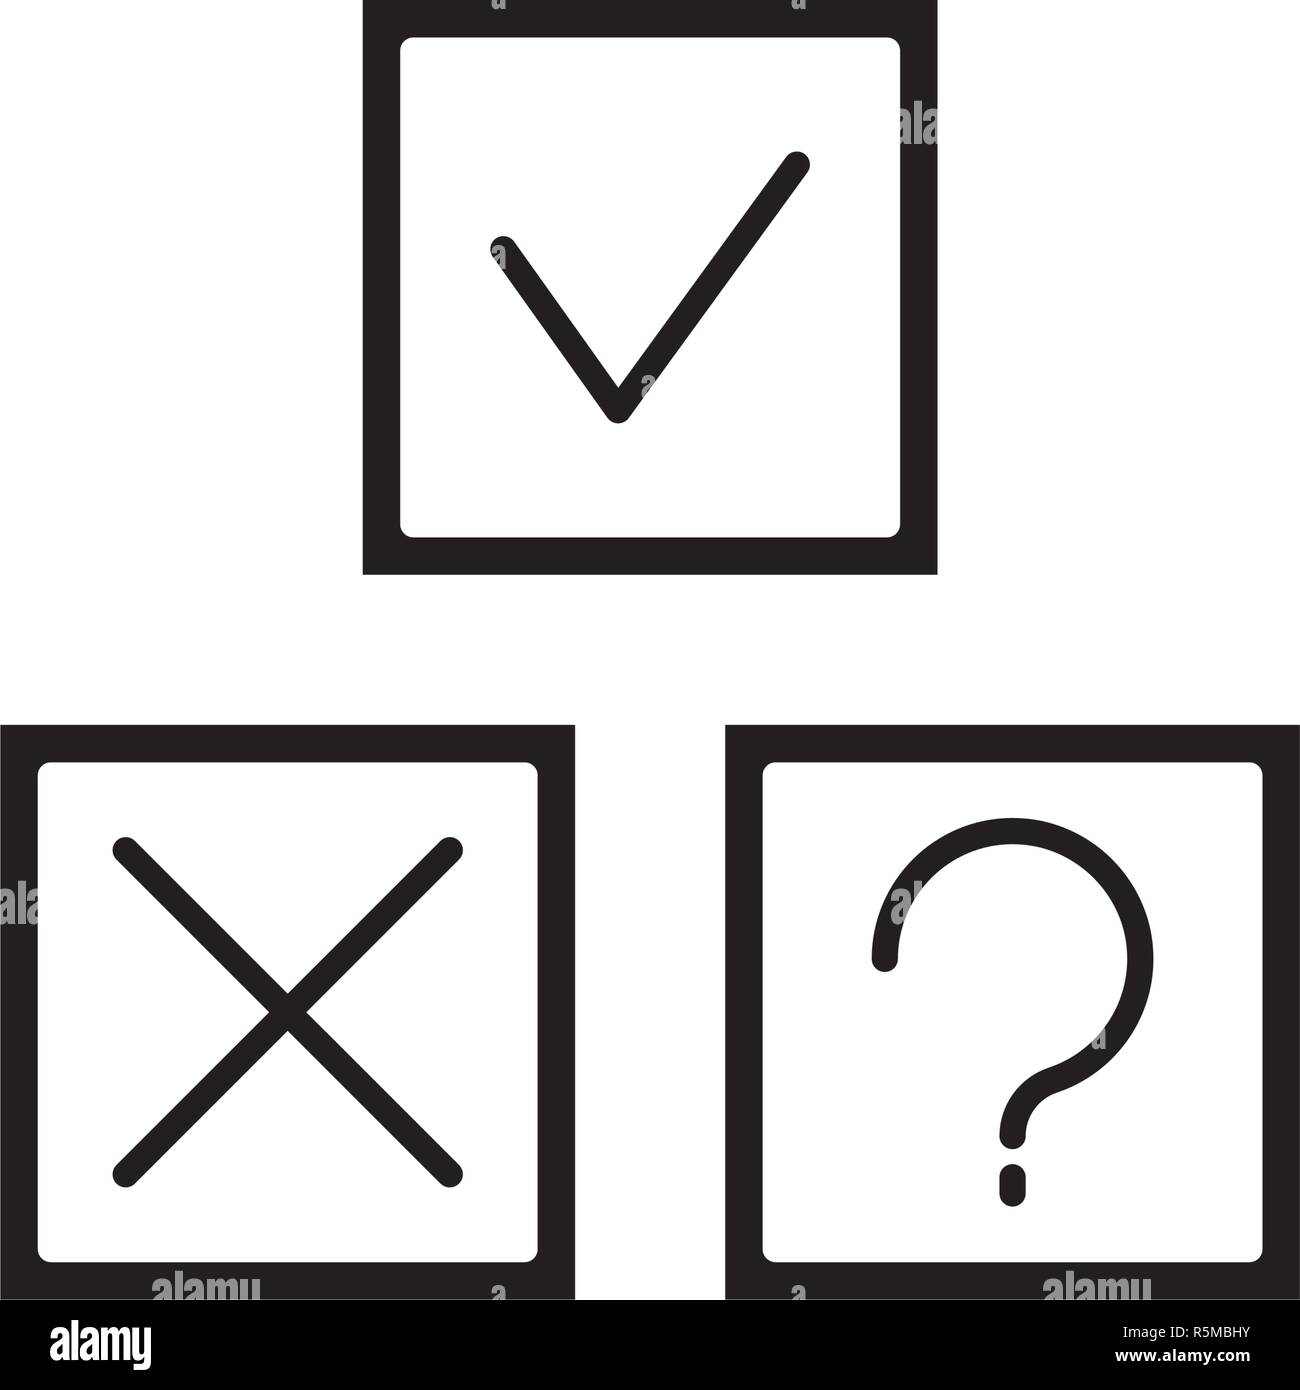 Rebus black icon, vector sign on isolated background. Rebus concept symbol, illustration  - Stock Image